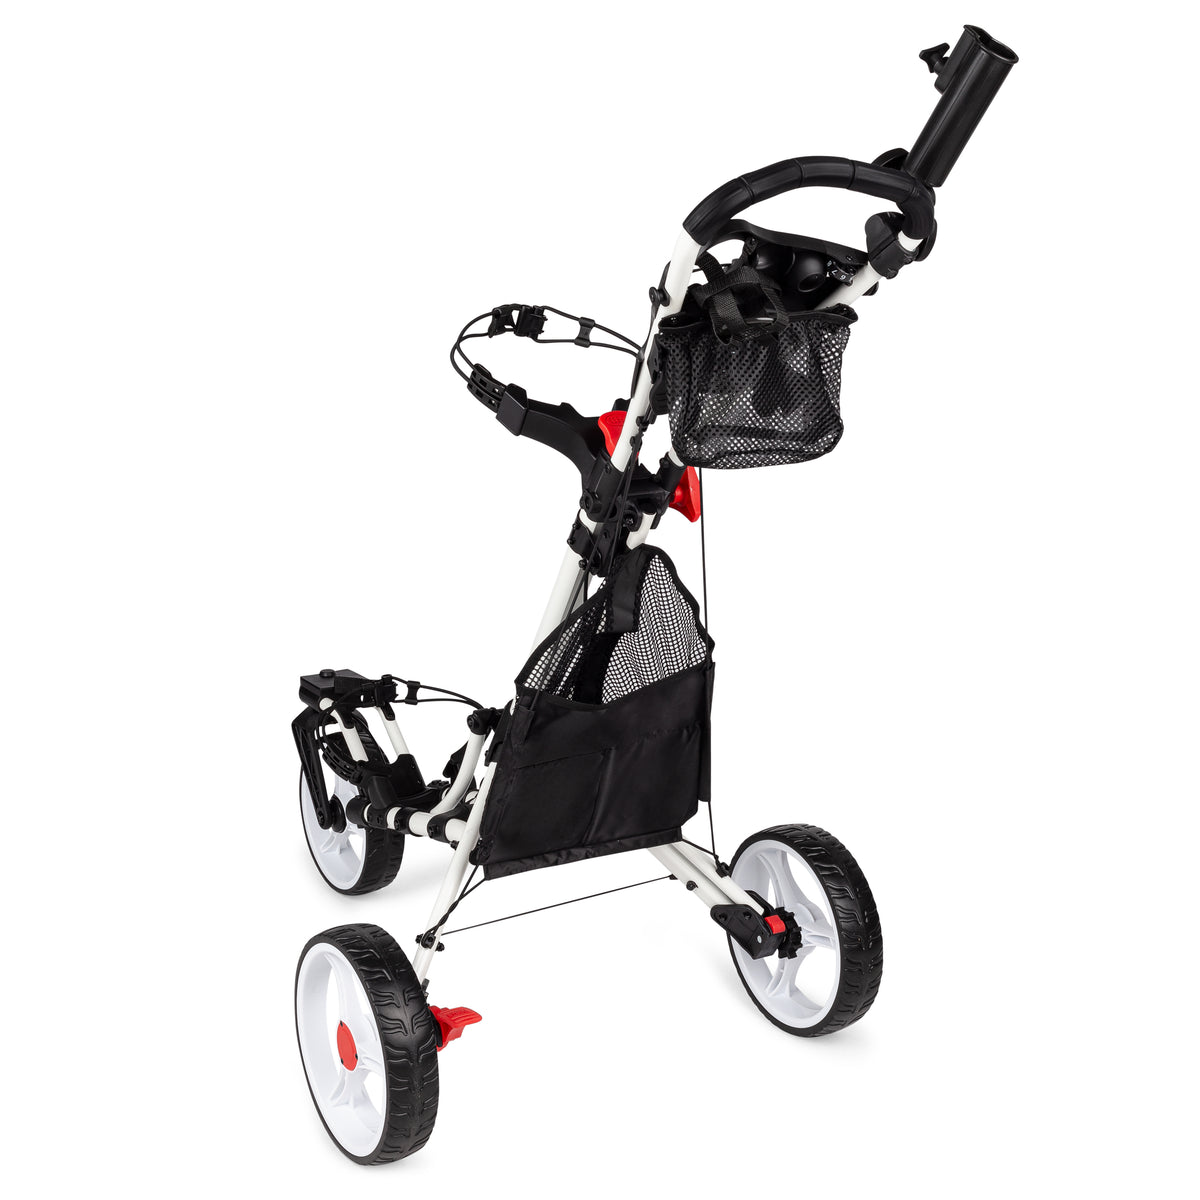 Swerve 3 Wheel Golf Cart- White/White